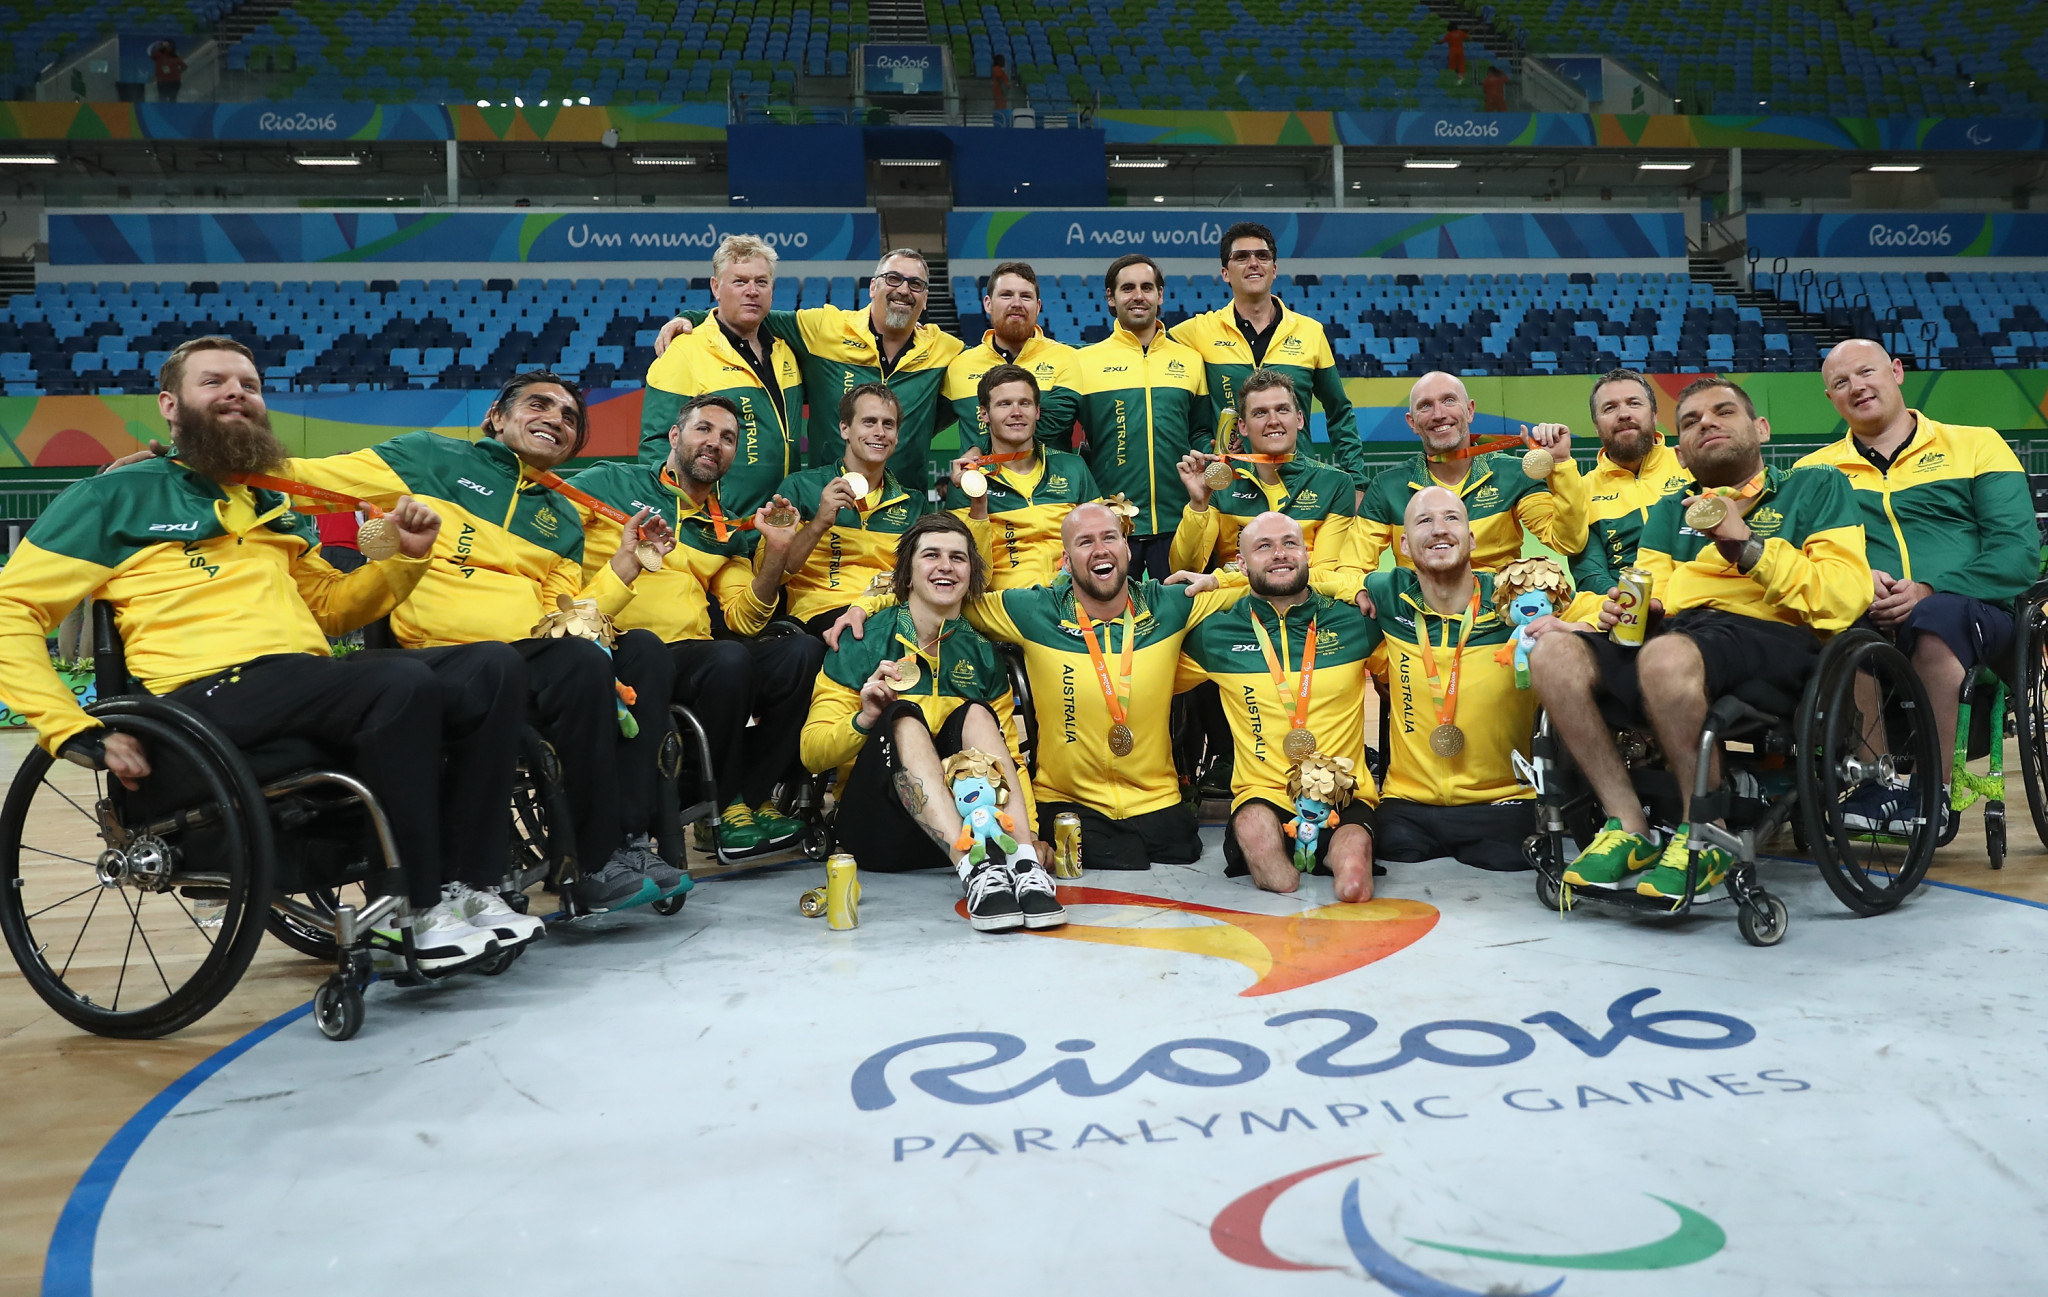 Hosts Australia select squad for Wheelchair Rugby World Championship